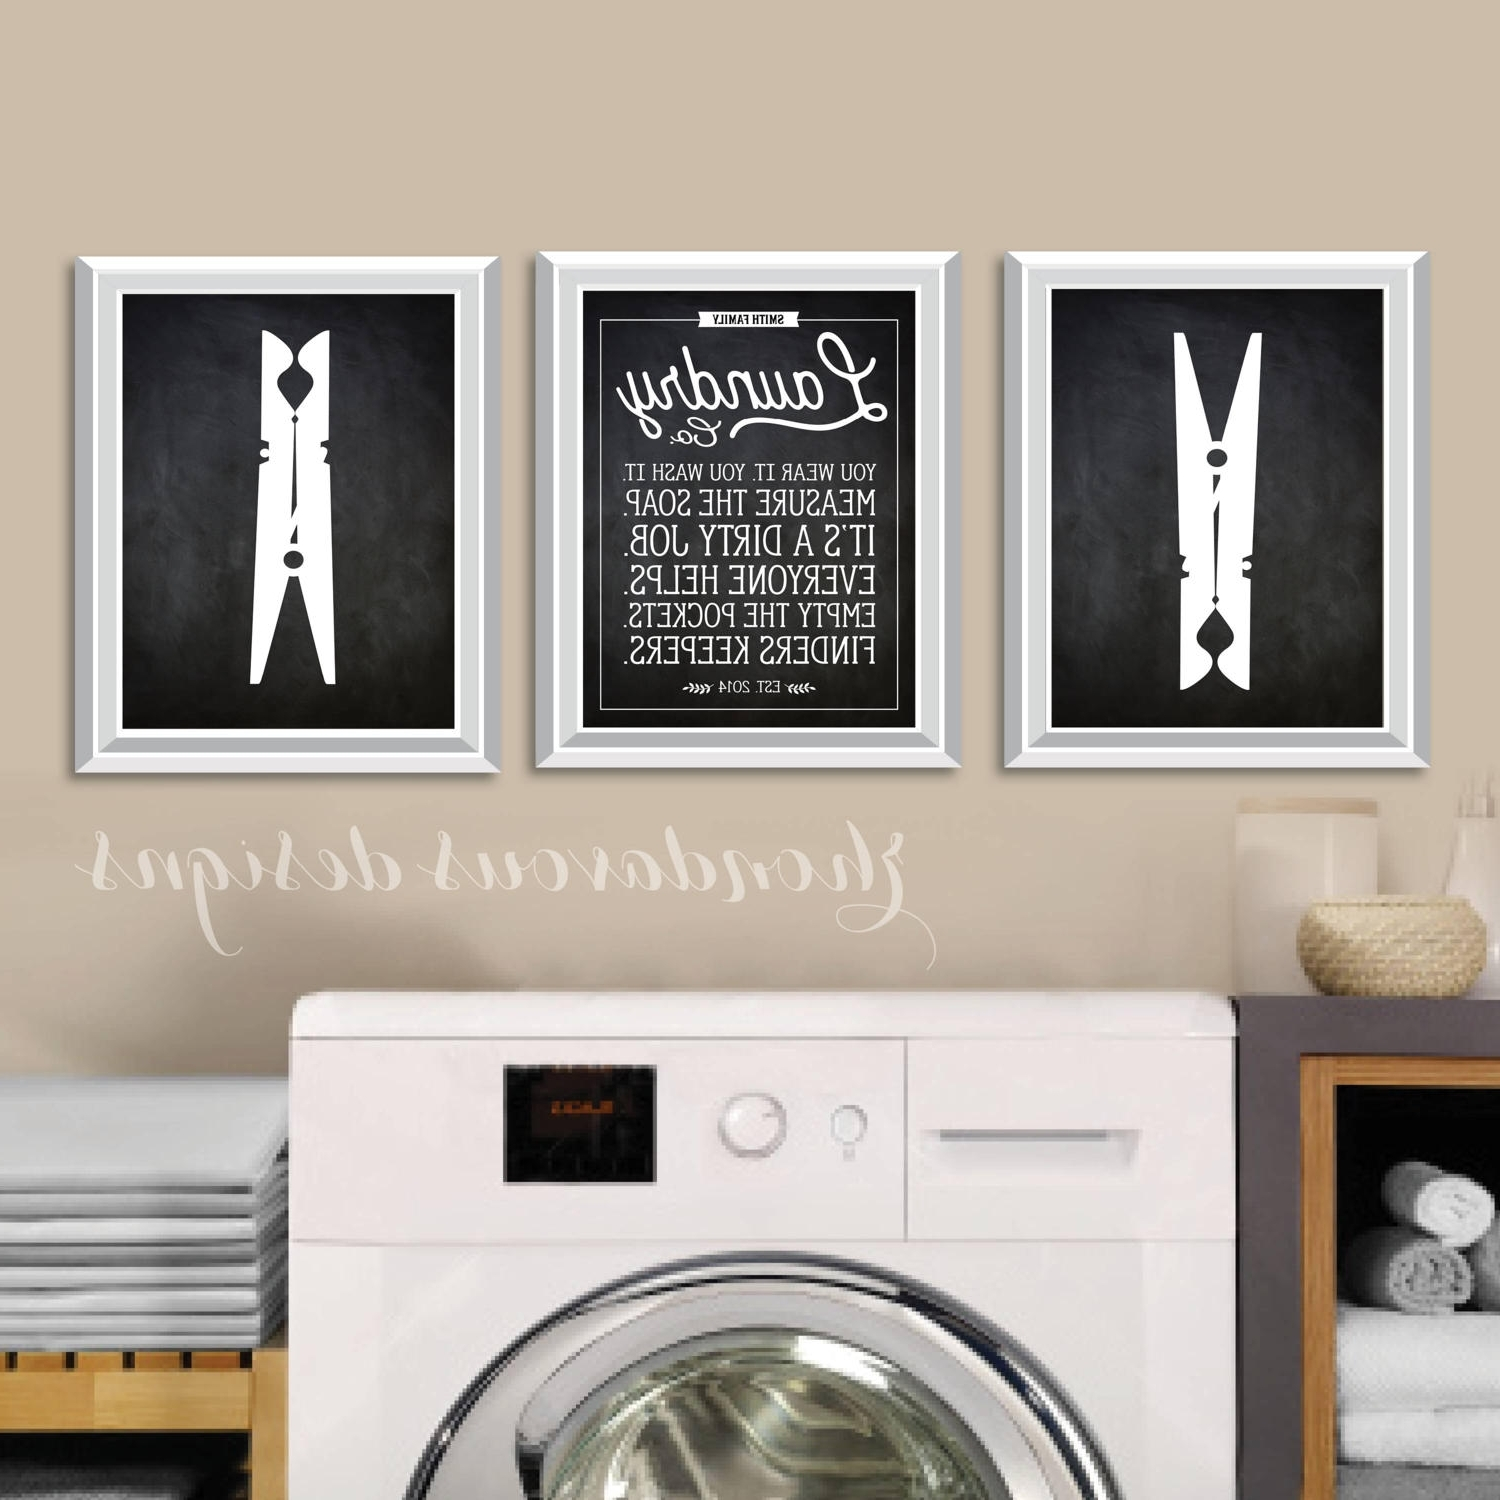 Laundry Wall Art, Chalkboard Quotes, Antique Signs, Farmhouse For Preferred Laundry Room Wall Art (View 11 of 15)